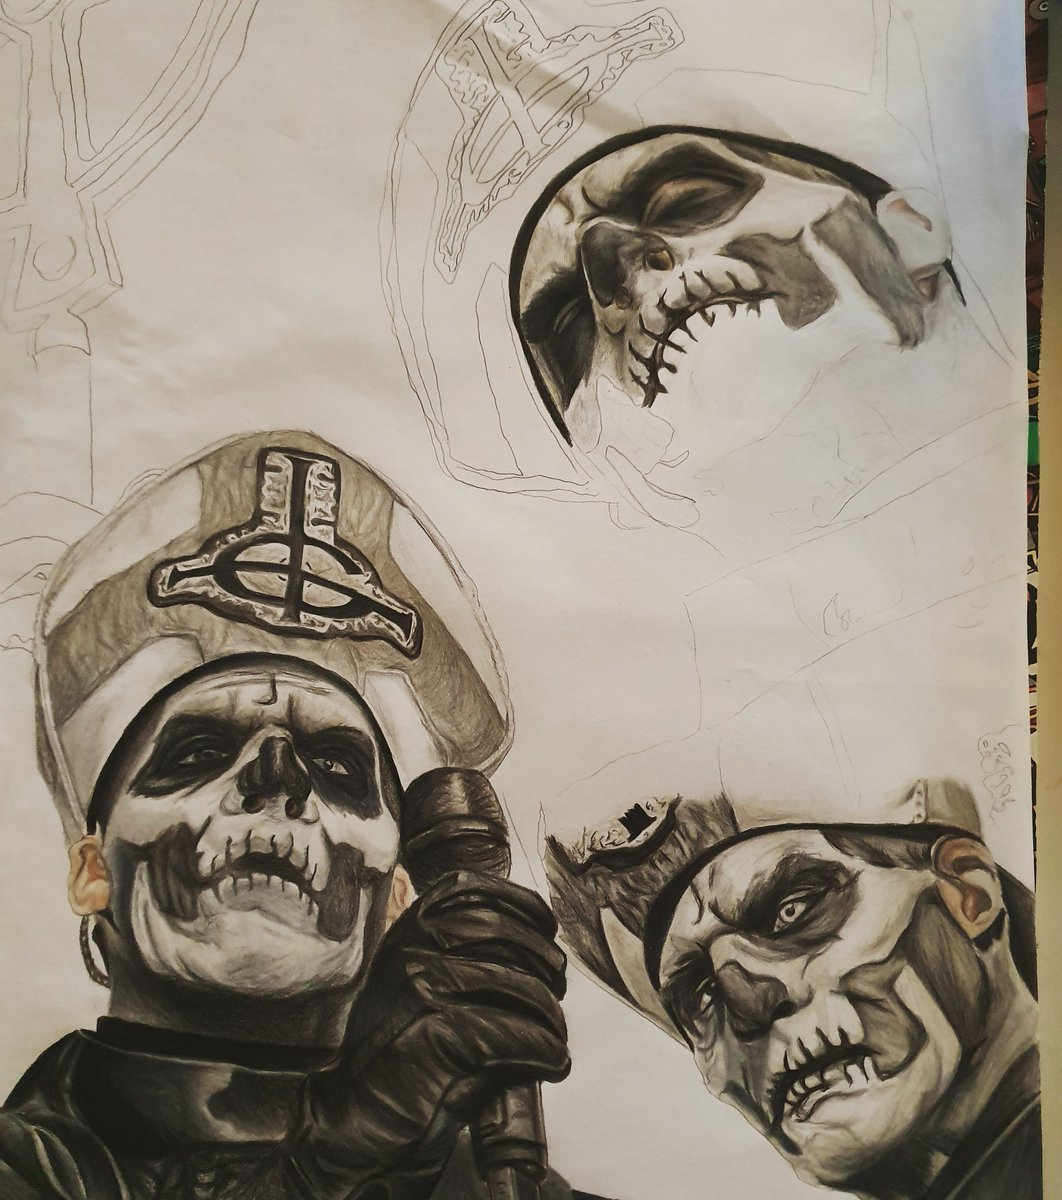 Home stretch, prints available when finished @thebandGHOST #papaemeritusii pic.twitter.com/licCdGSf9g